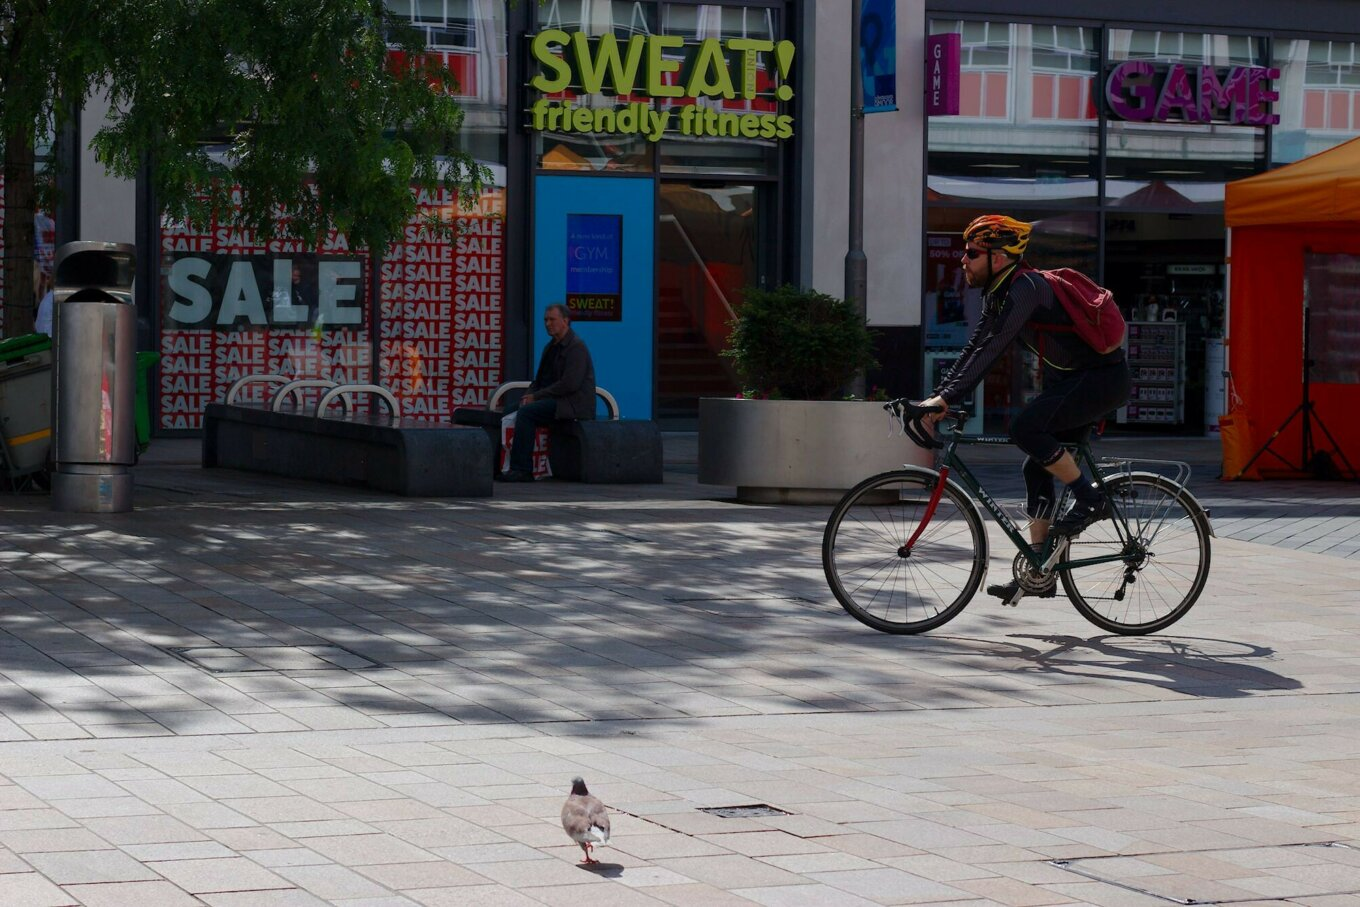 A cyclist in a pedestrianised space on The Moor in Sheffield